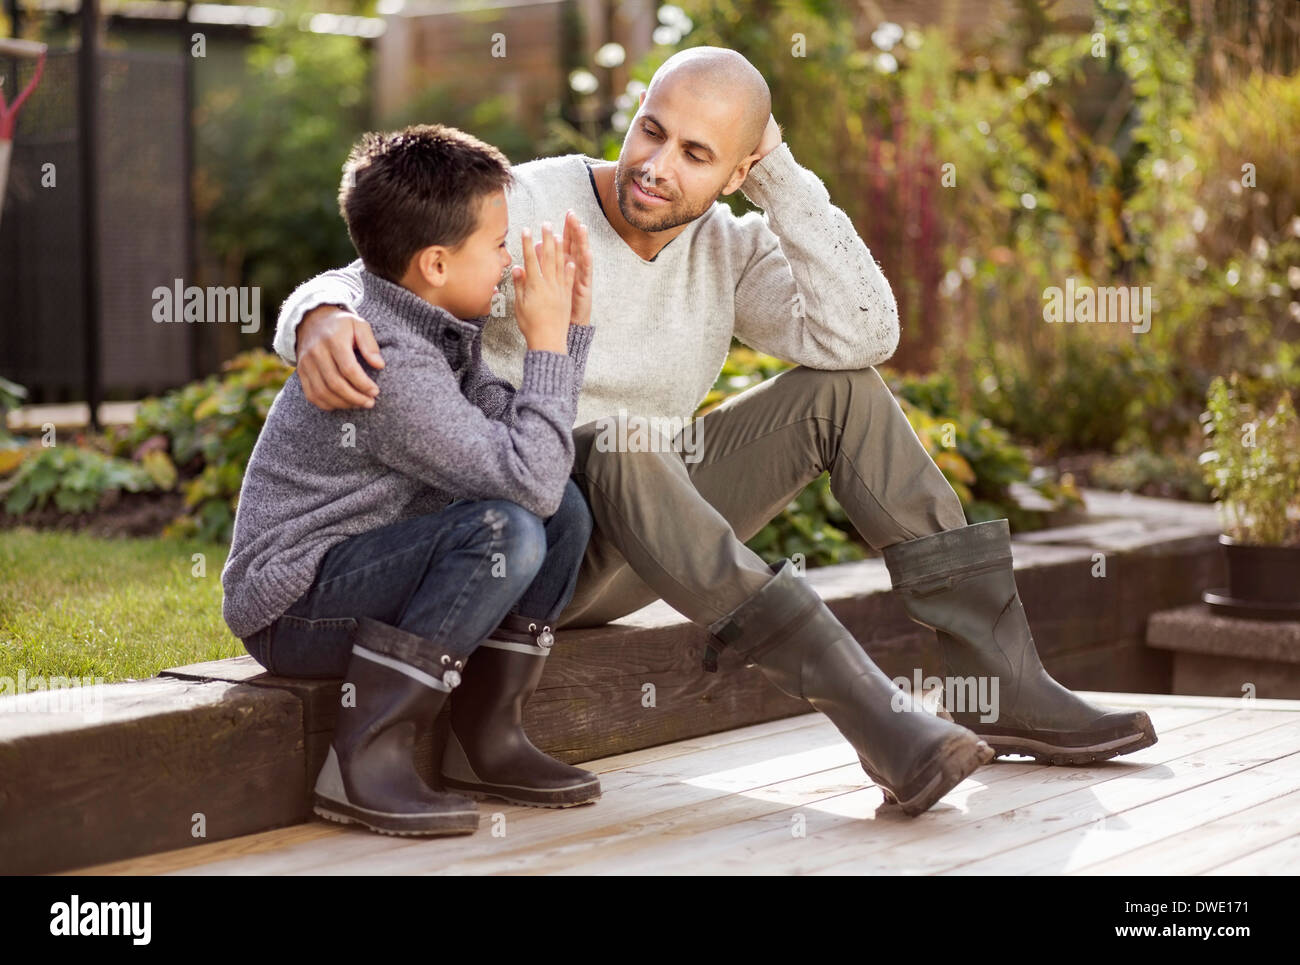 Father and son sitting in garden - Stock Image